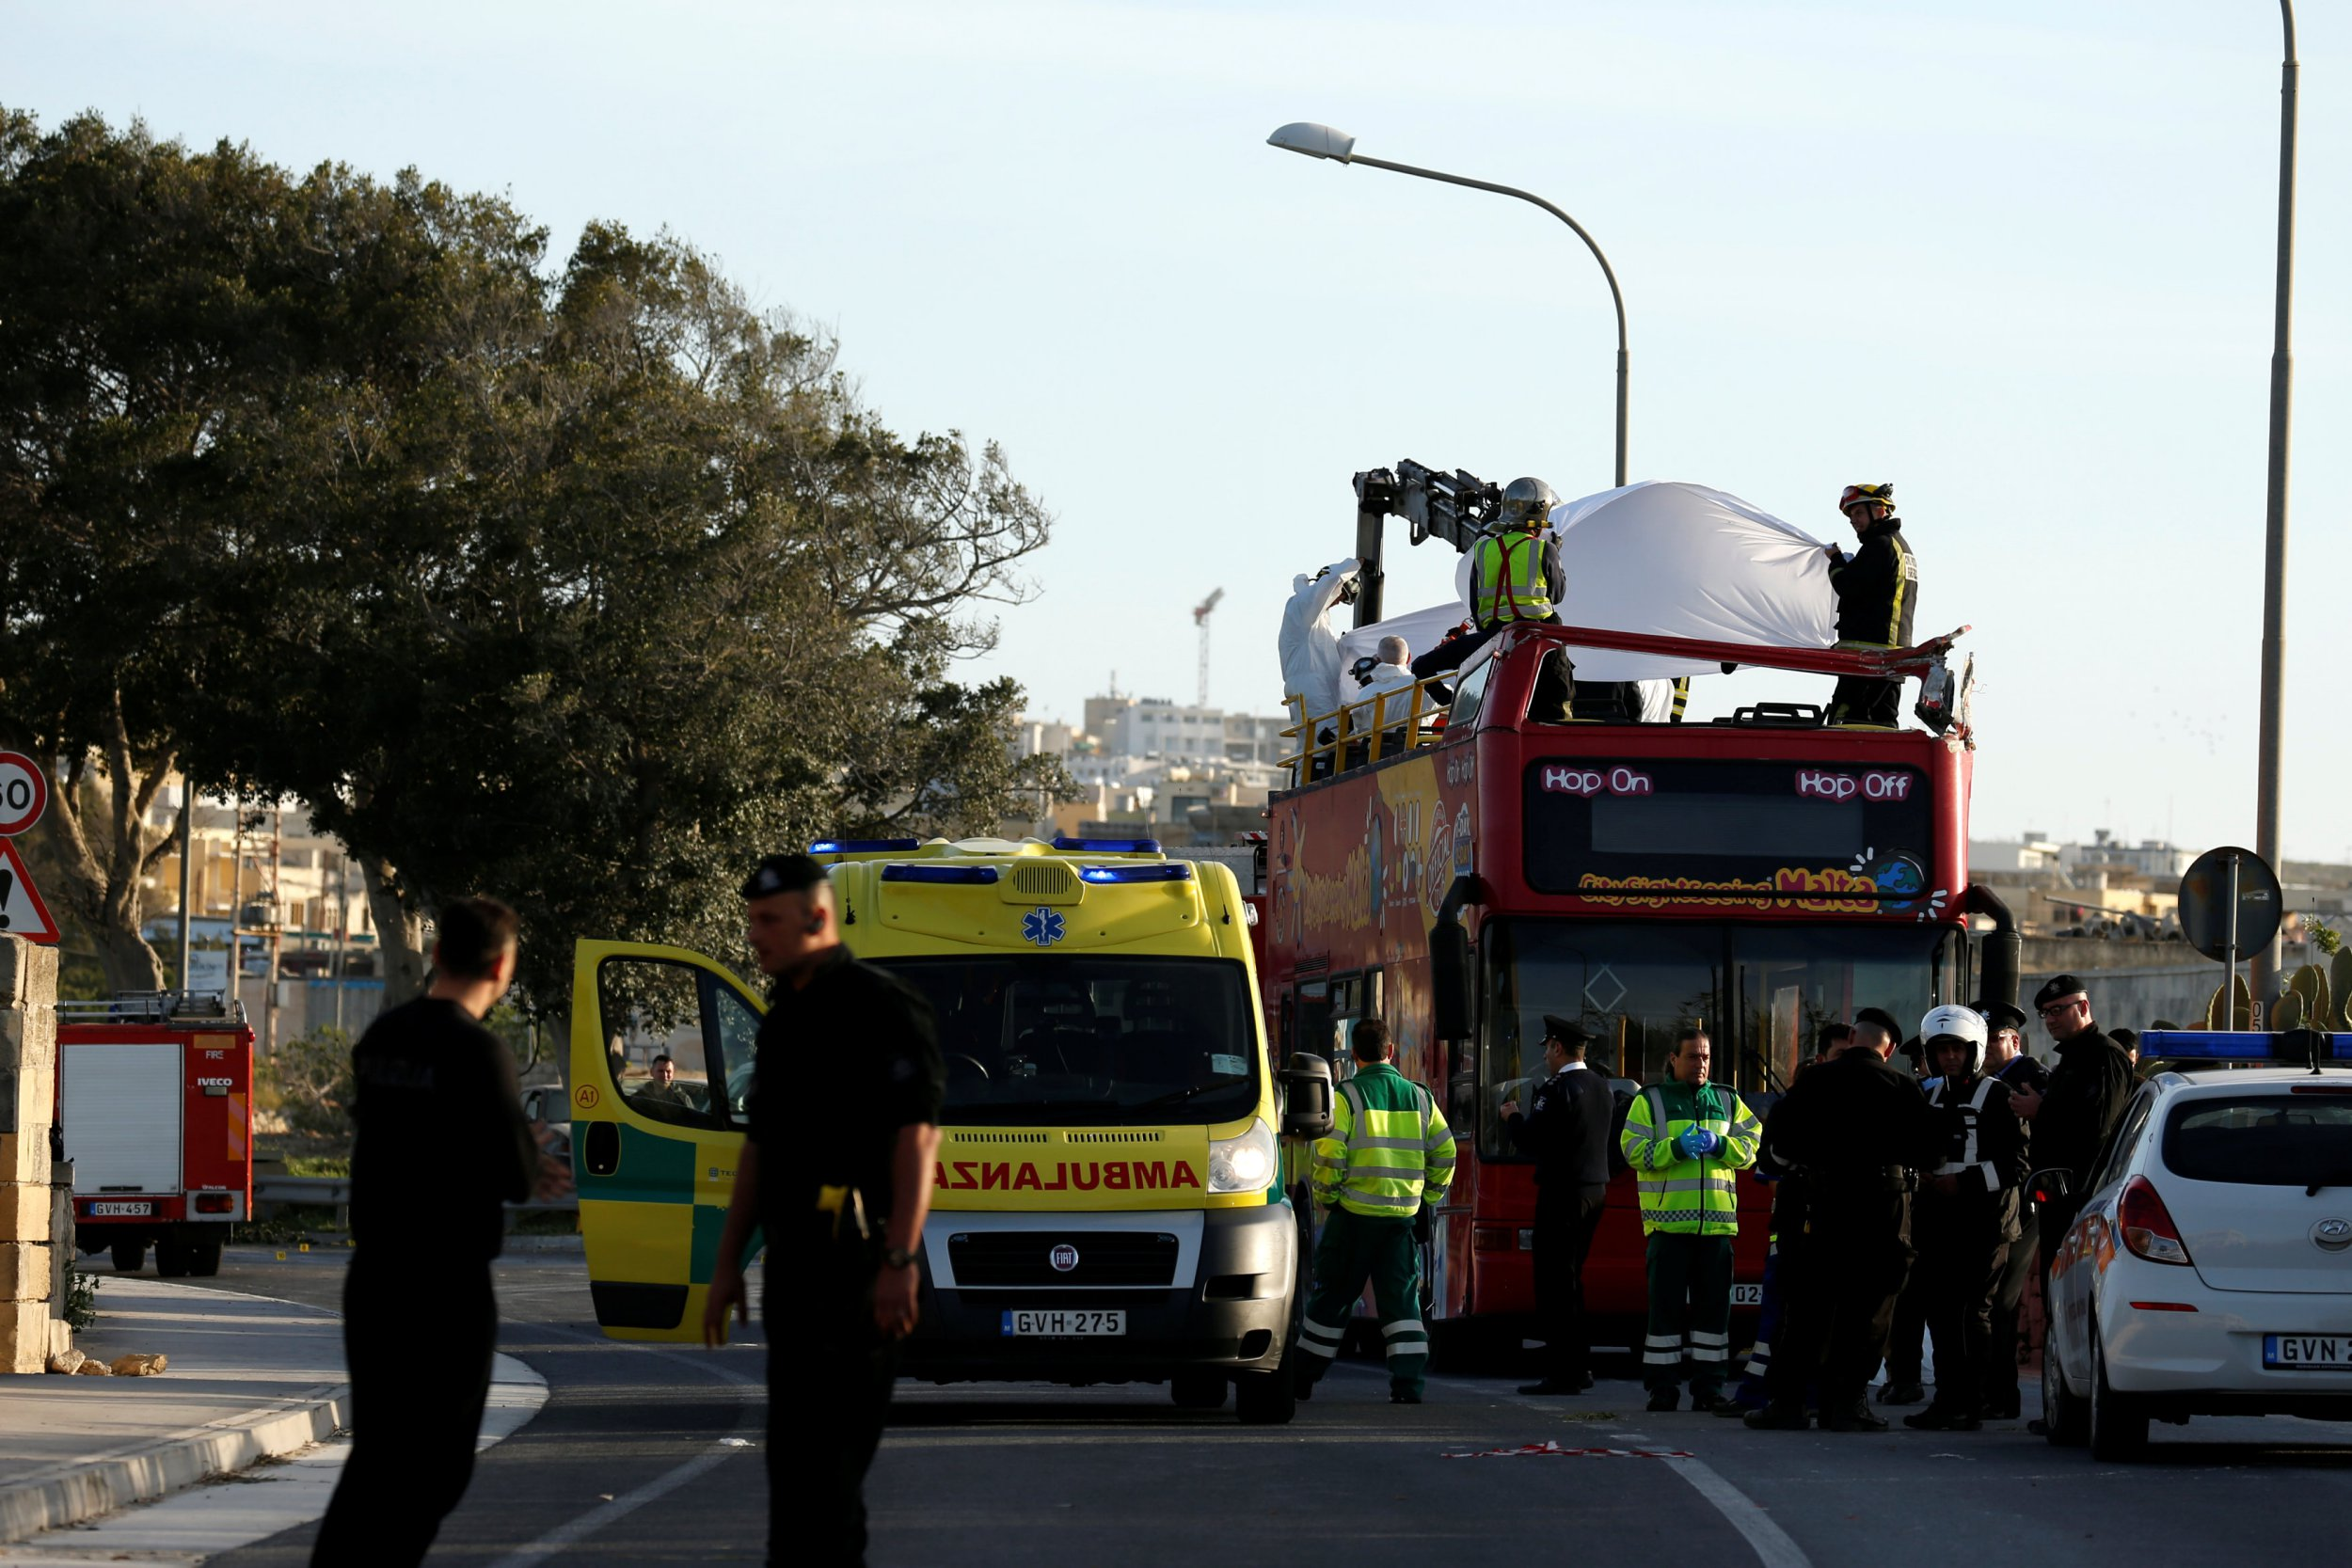 Rescue workers retrieve a body from the top of an open top, double-decker sightseeing bus after it crashed into some low-lying tree branches, in Zurrieq, Malta April 9,2018. REUTERS/Darrin Zammit Lupi